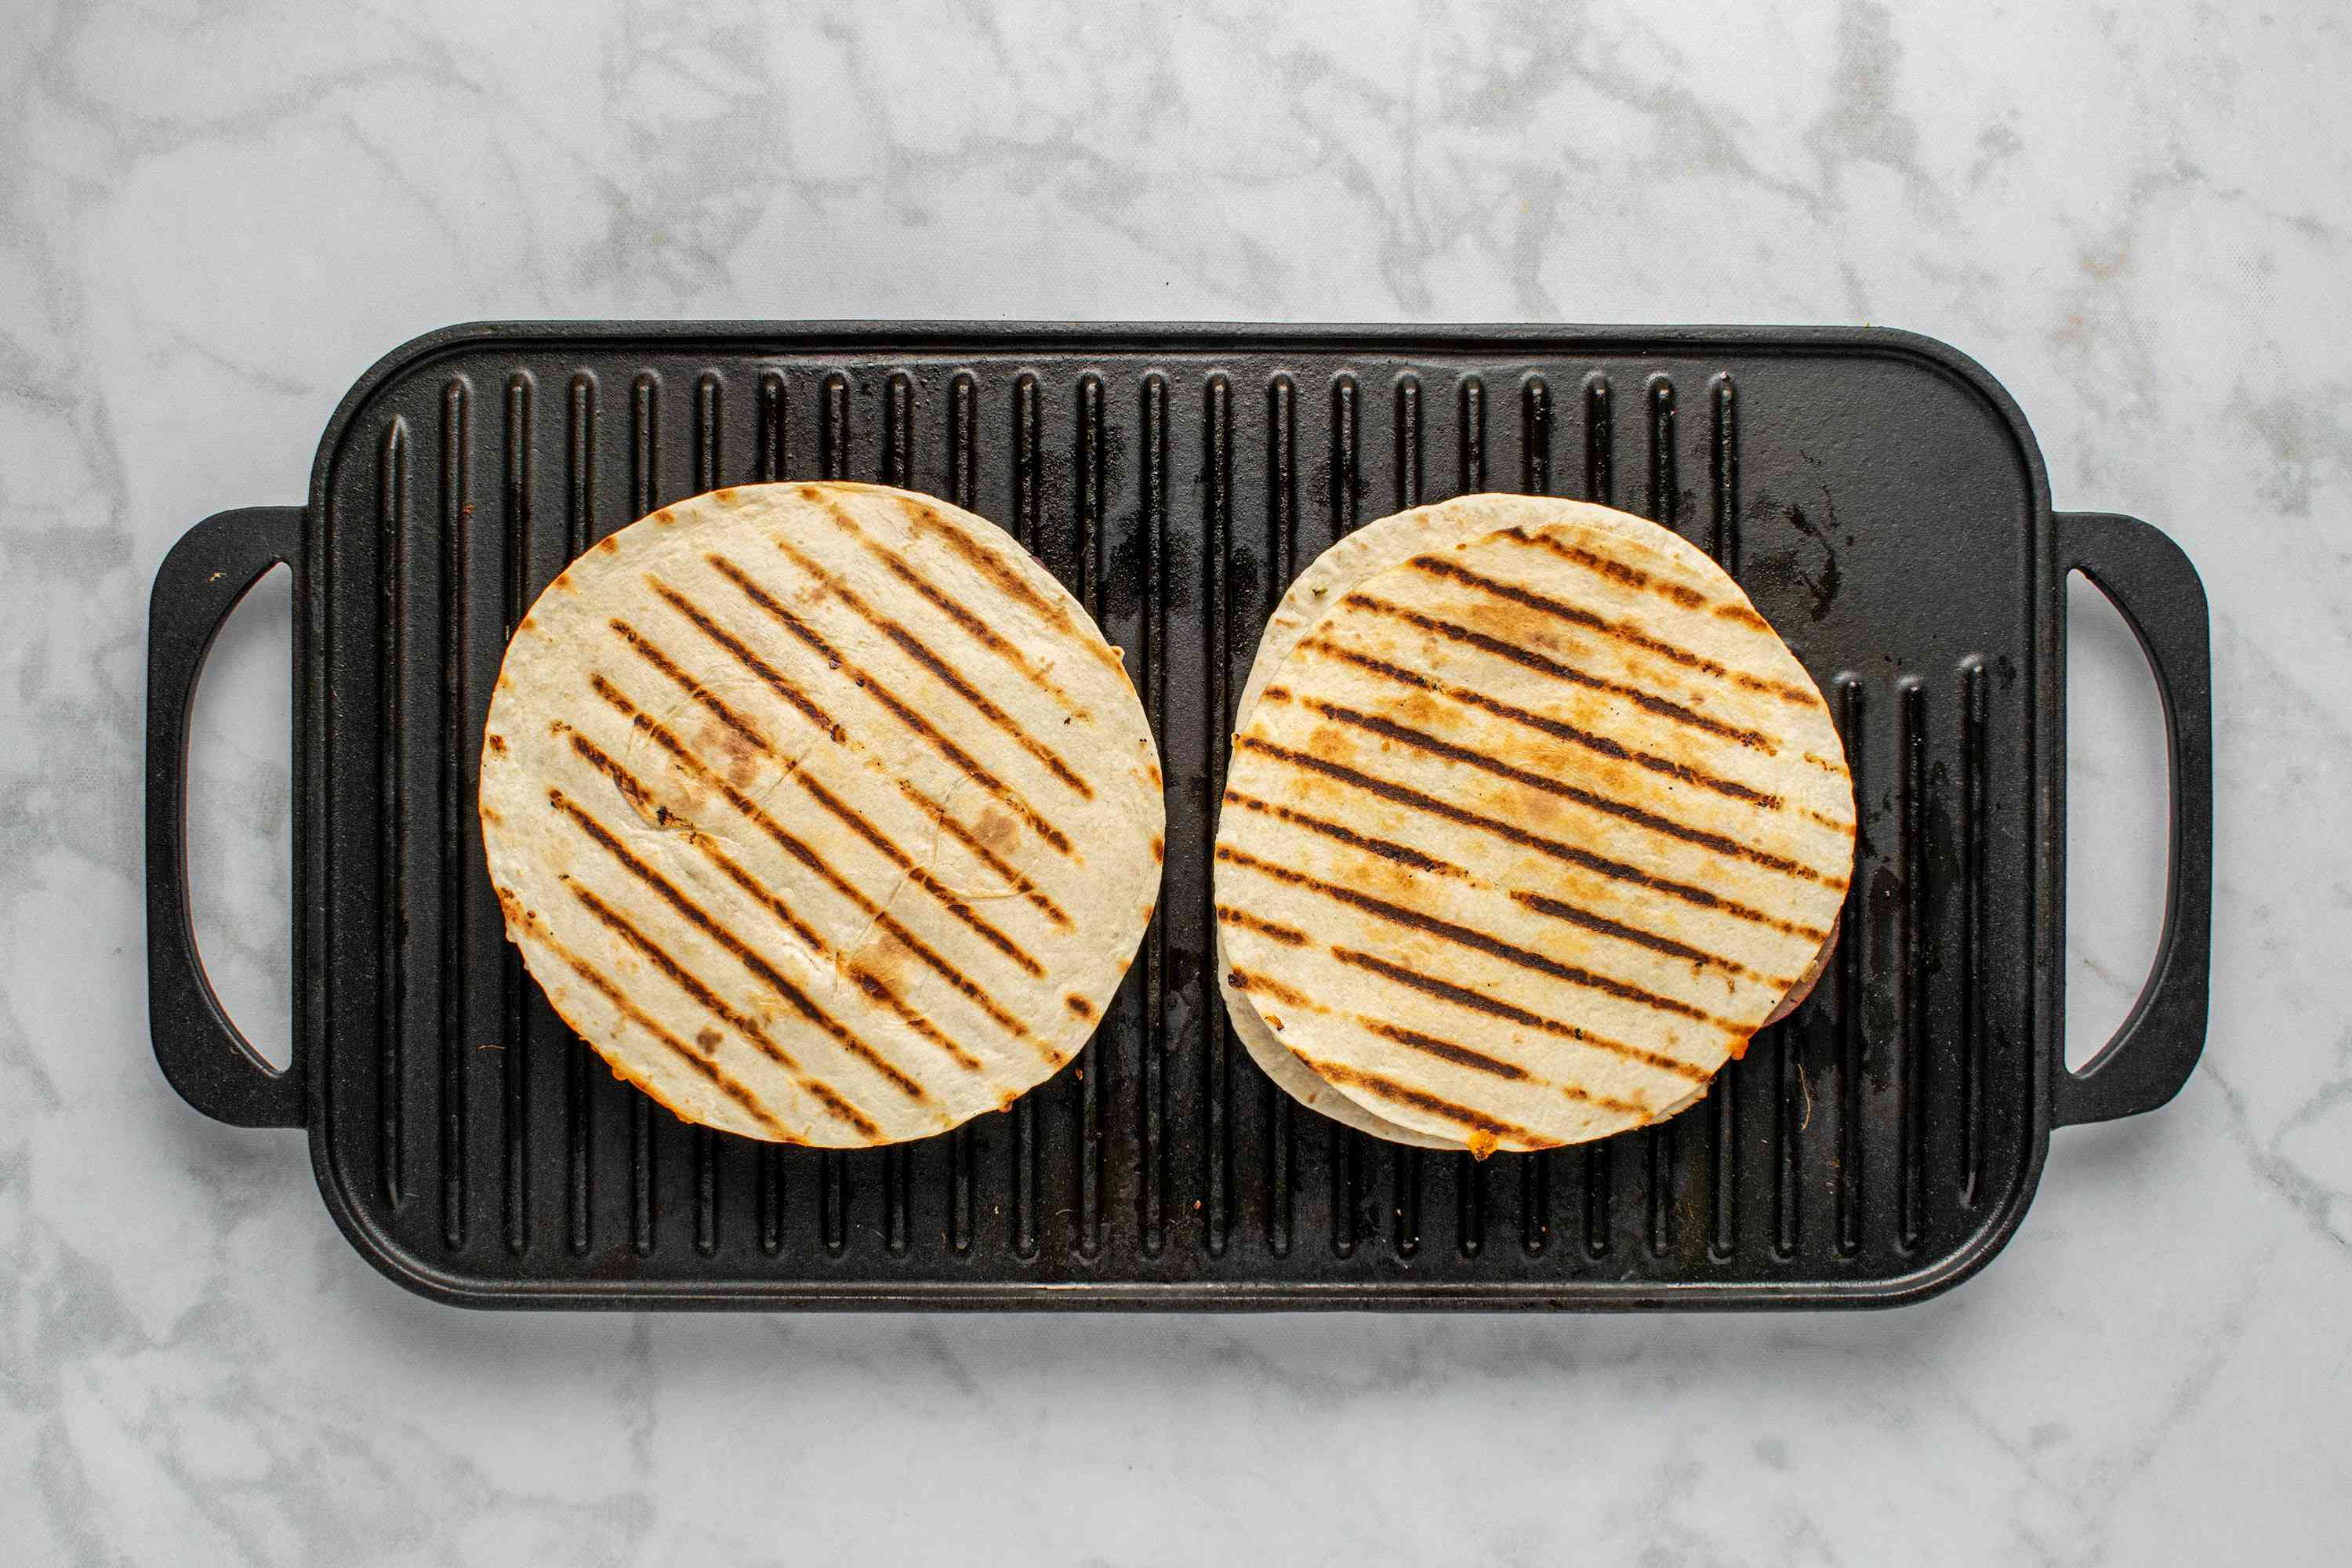 Grilled Chicken Quesadilla on the grill